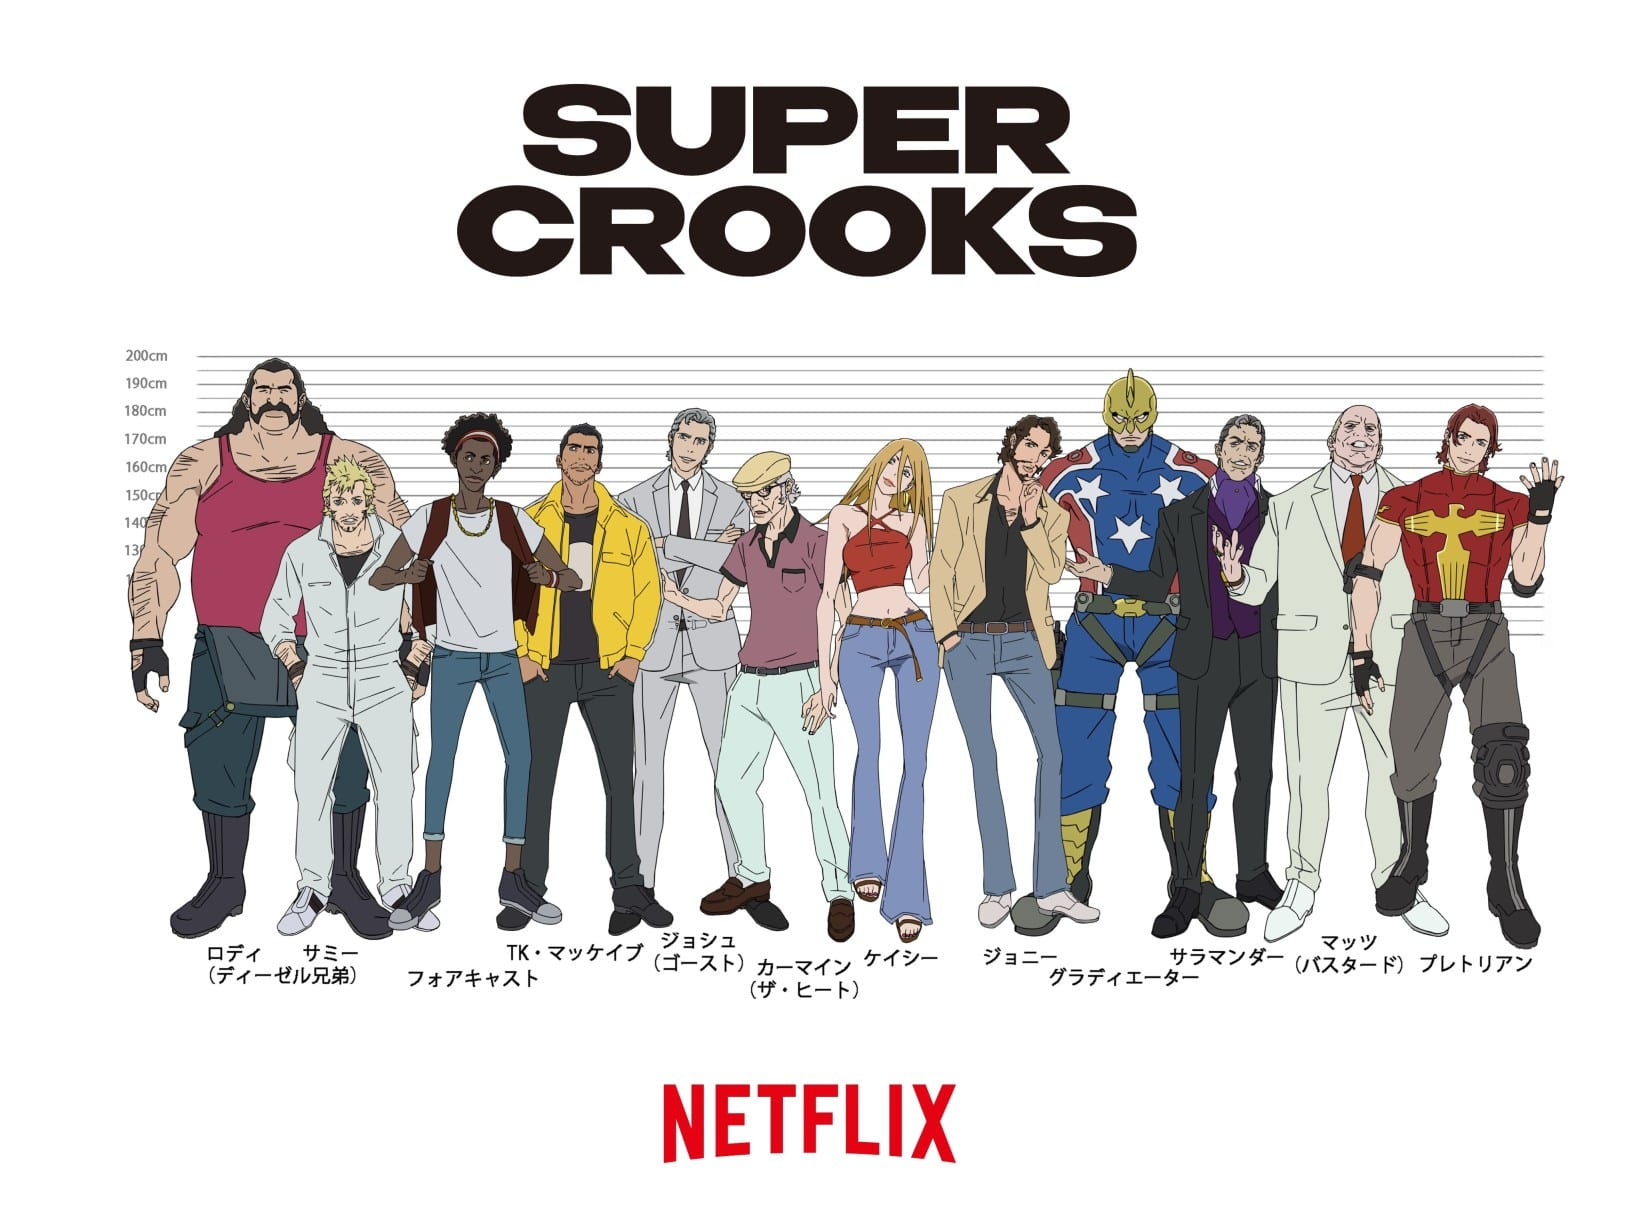 Super Crooks Anime Announced by Netflix